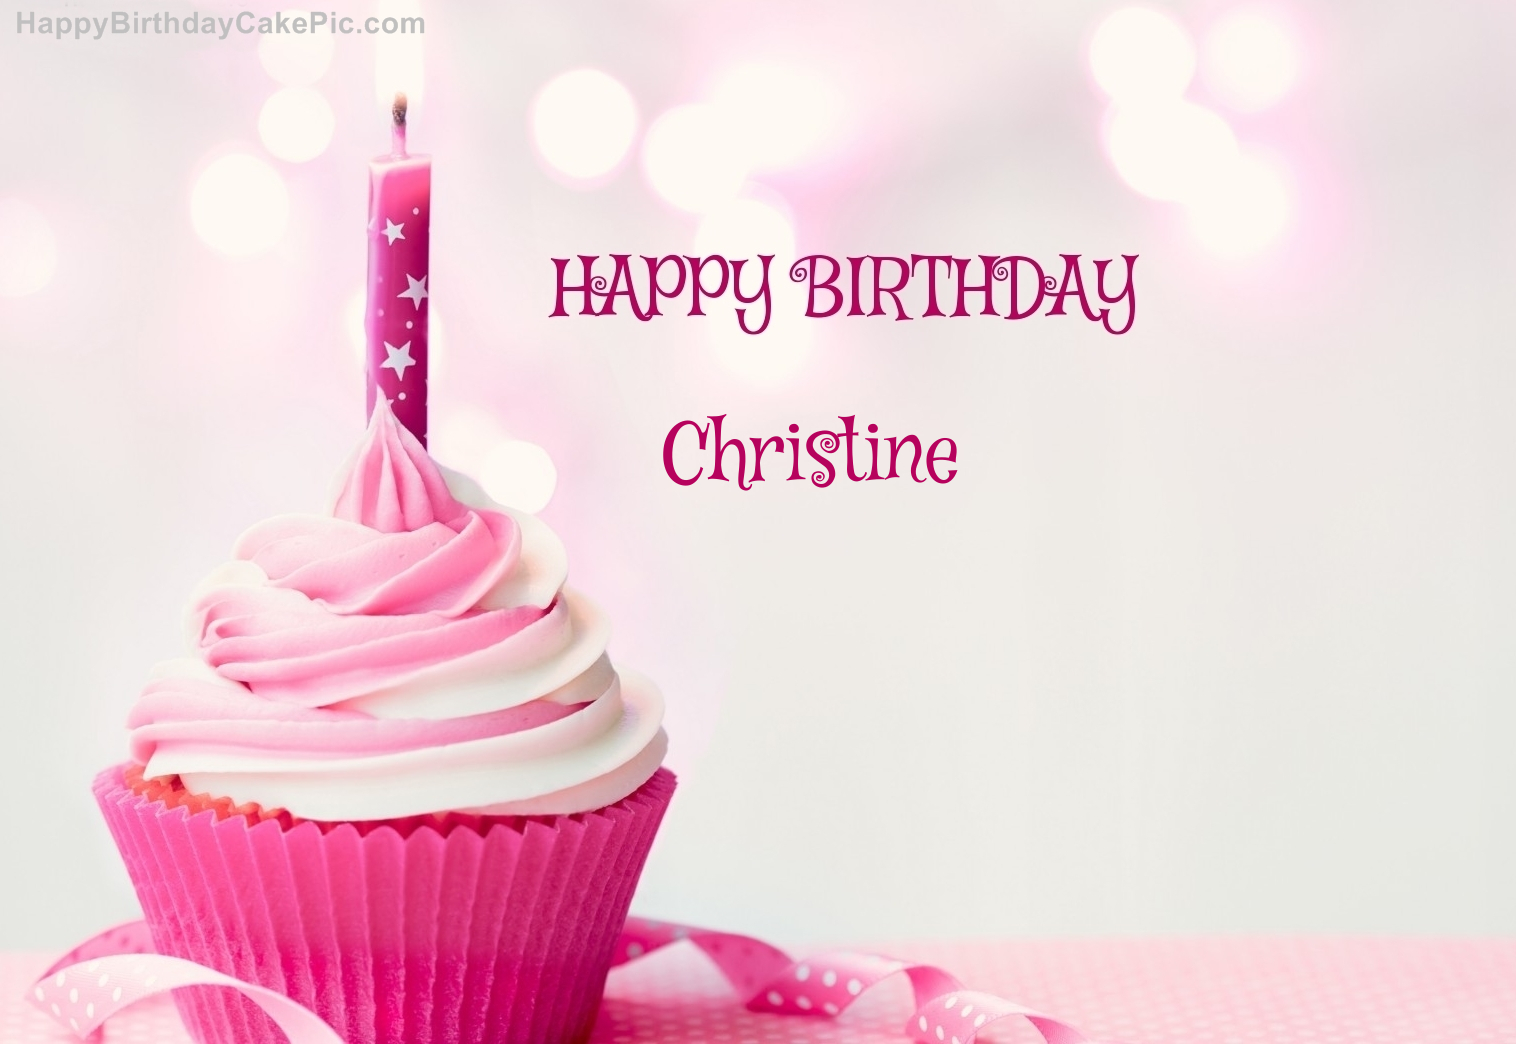 ️ Happy Birthday Cupcake Candle Pink Cake For Christine